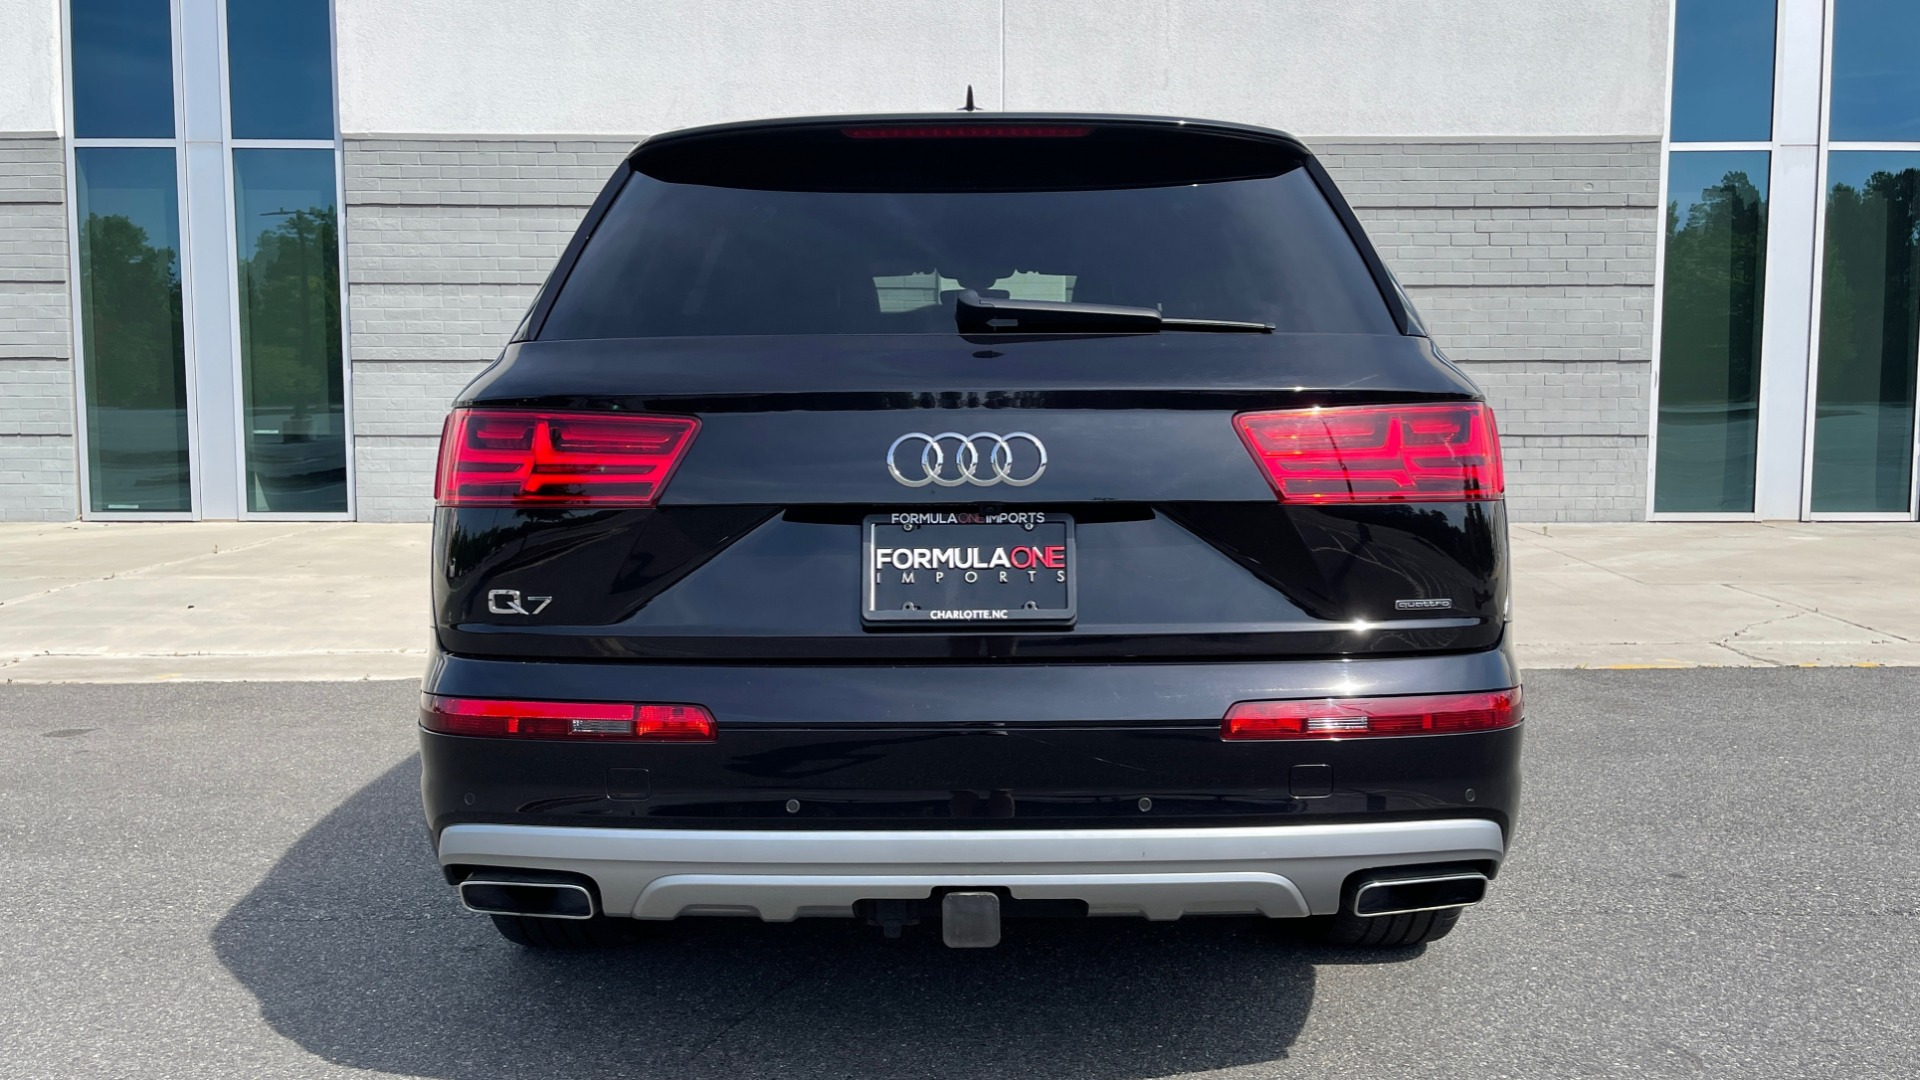 Used 2018 Audi Q7 PREMIUM PLUS / NAV / PANO-ROOF / BOSE / 3-ROW / REARVIEW for sale $43,461 at Formula Imports in Charlotte NC 28227 20